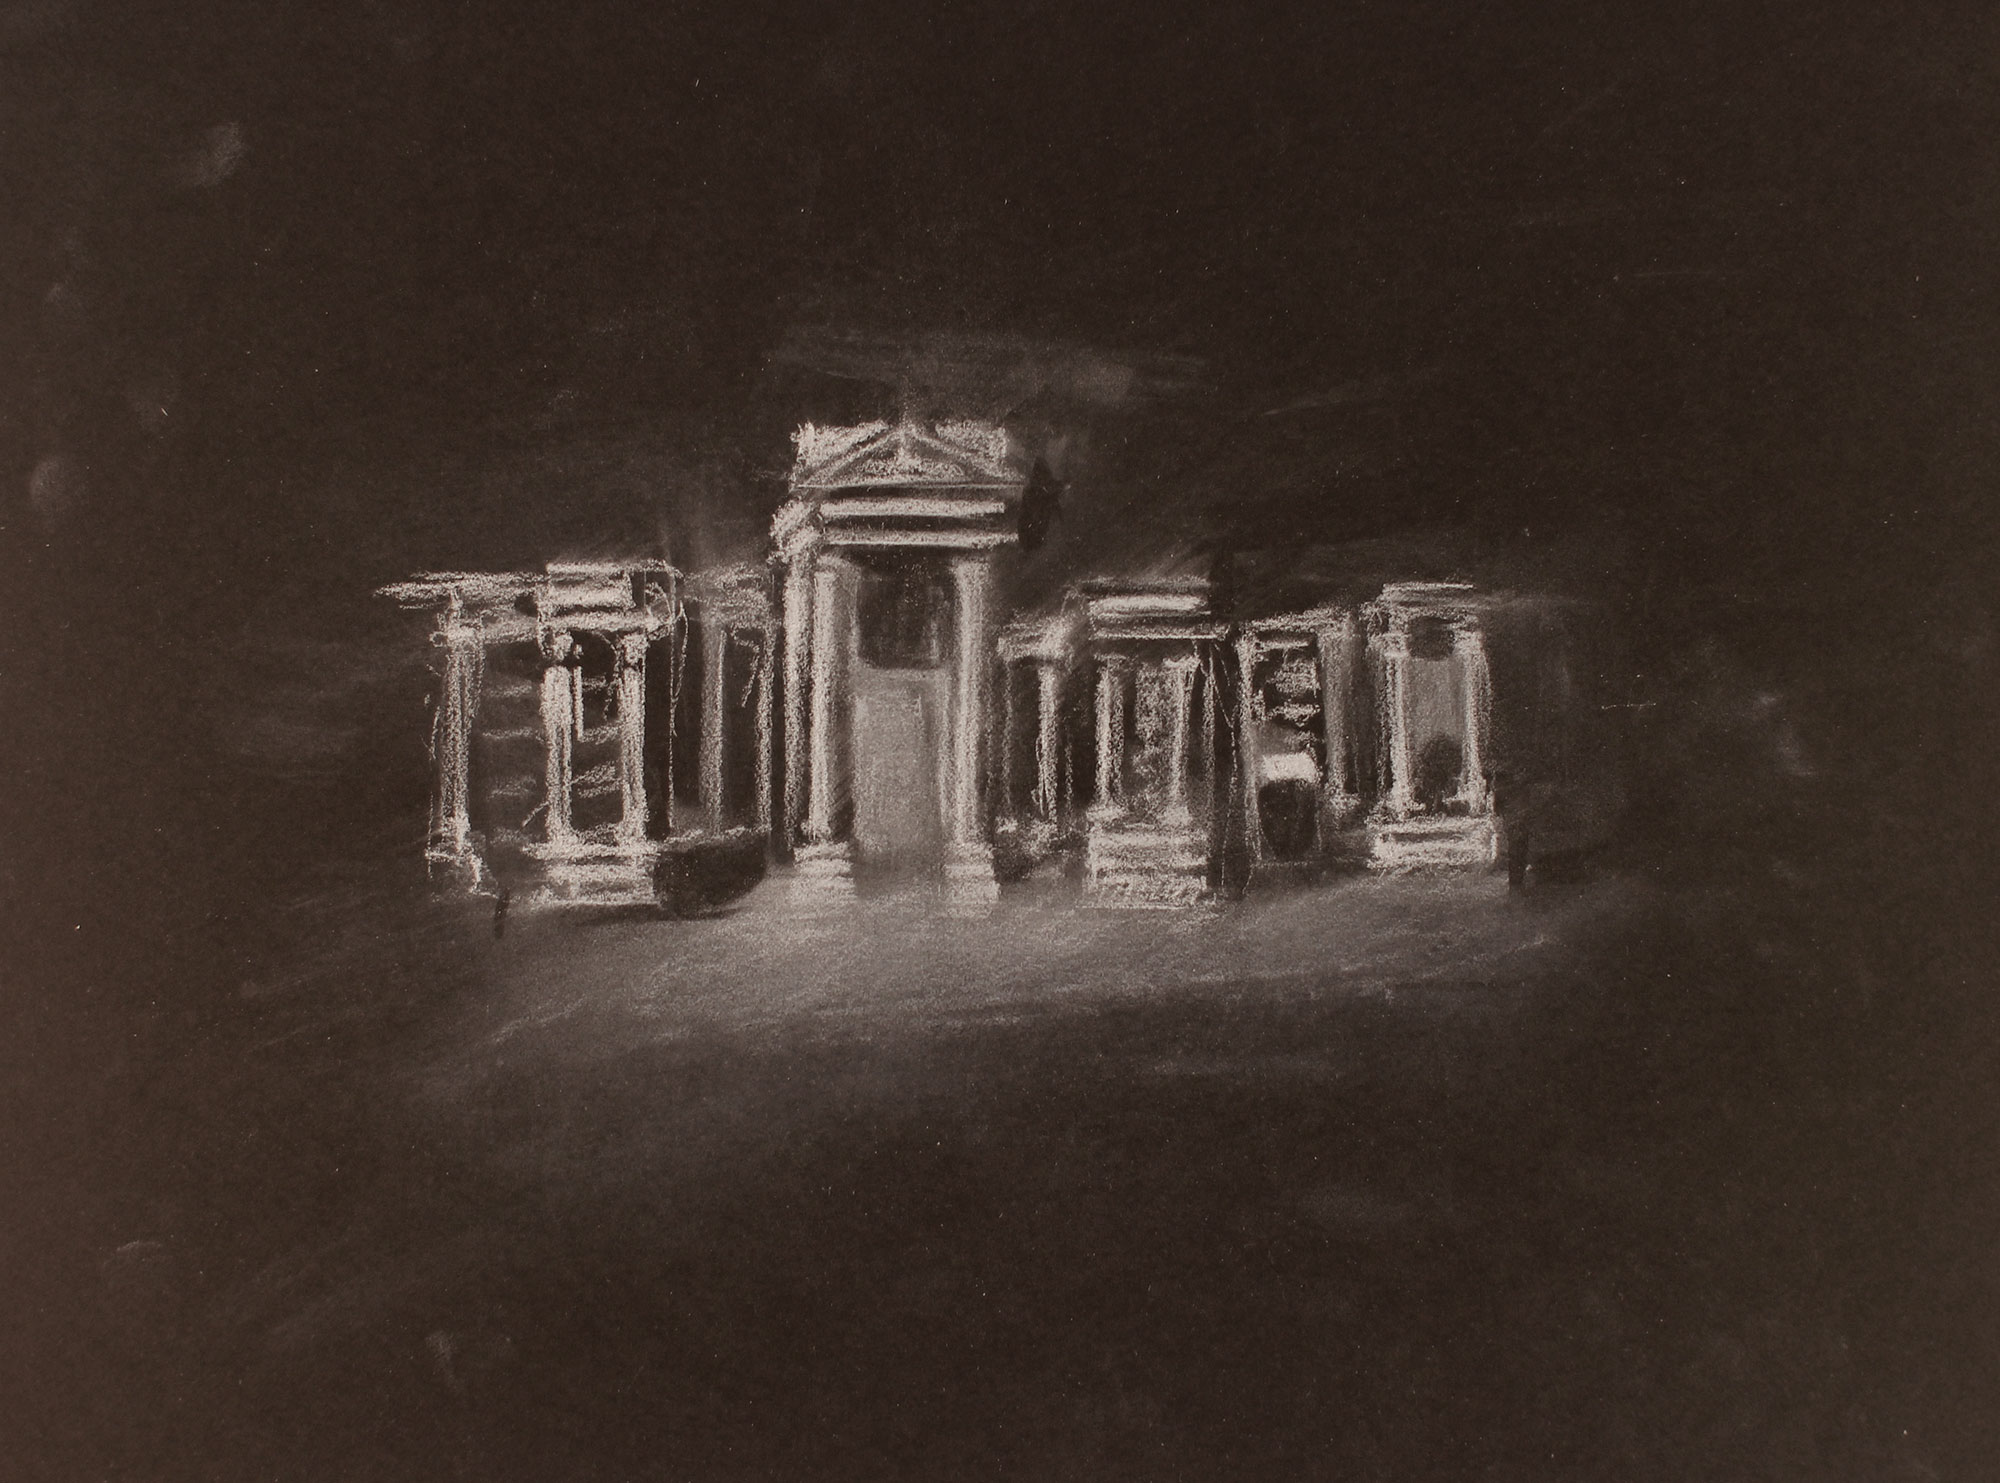 LOST CITY (PALMYRA) 1, 2017, 10 X 14 INCHES, WHITE CONTE ON PAPER